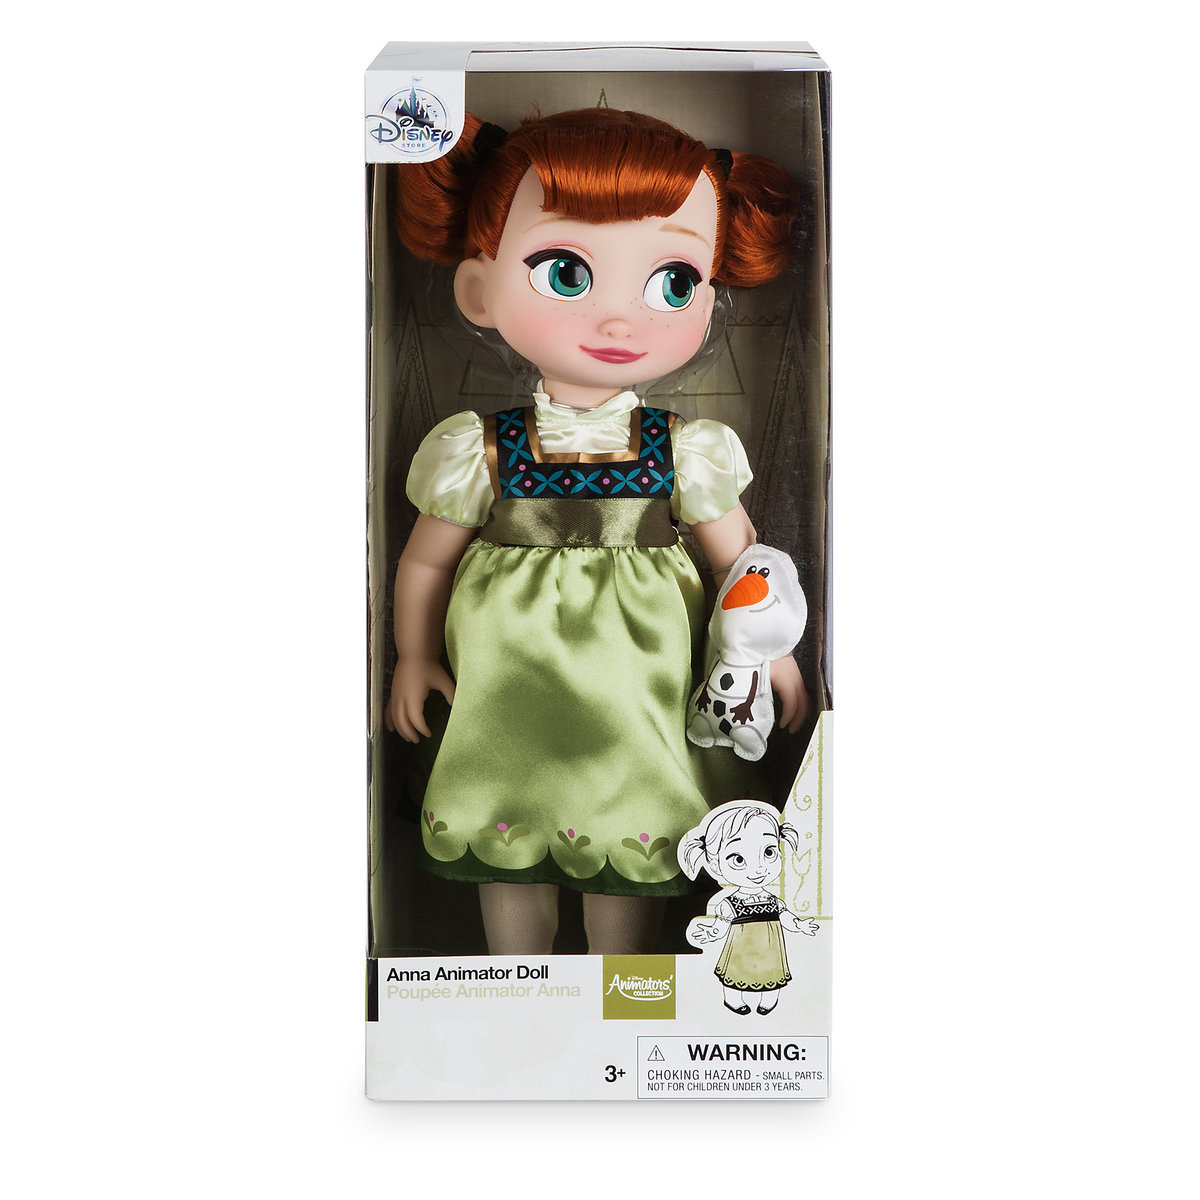 Disney Princess Animators' Collection Anna Doll From Frozen